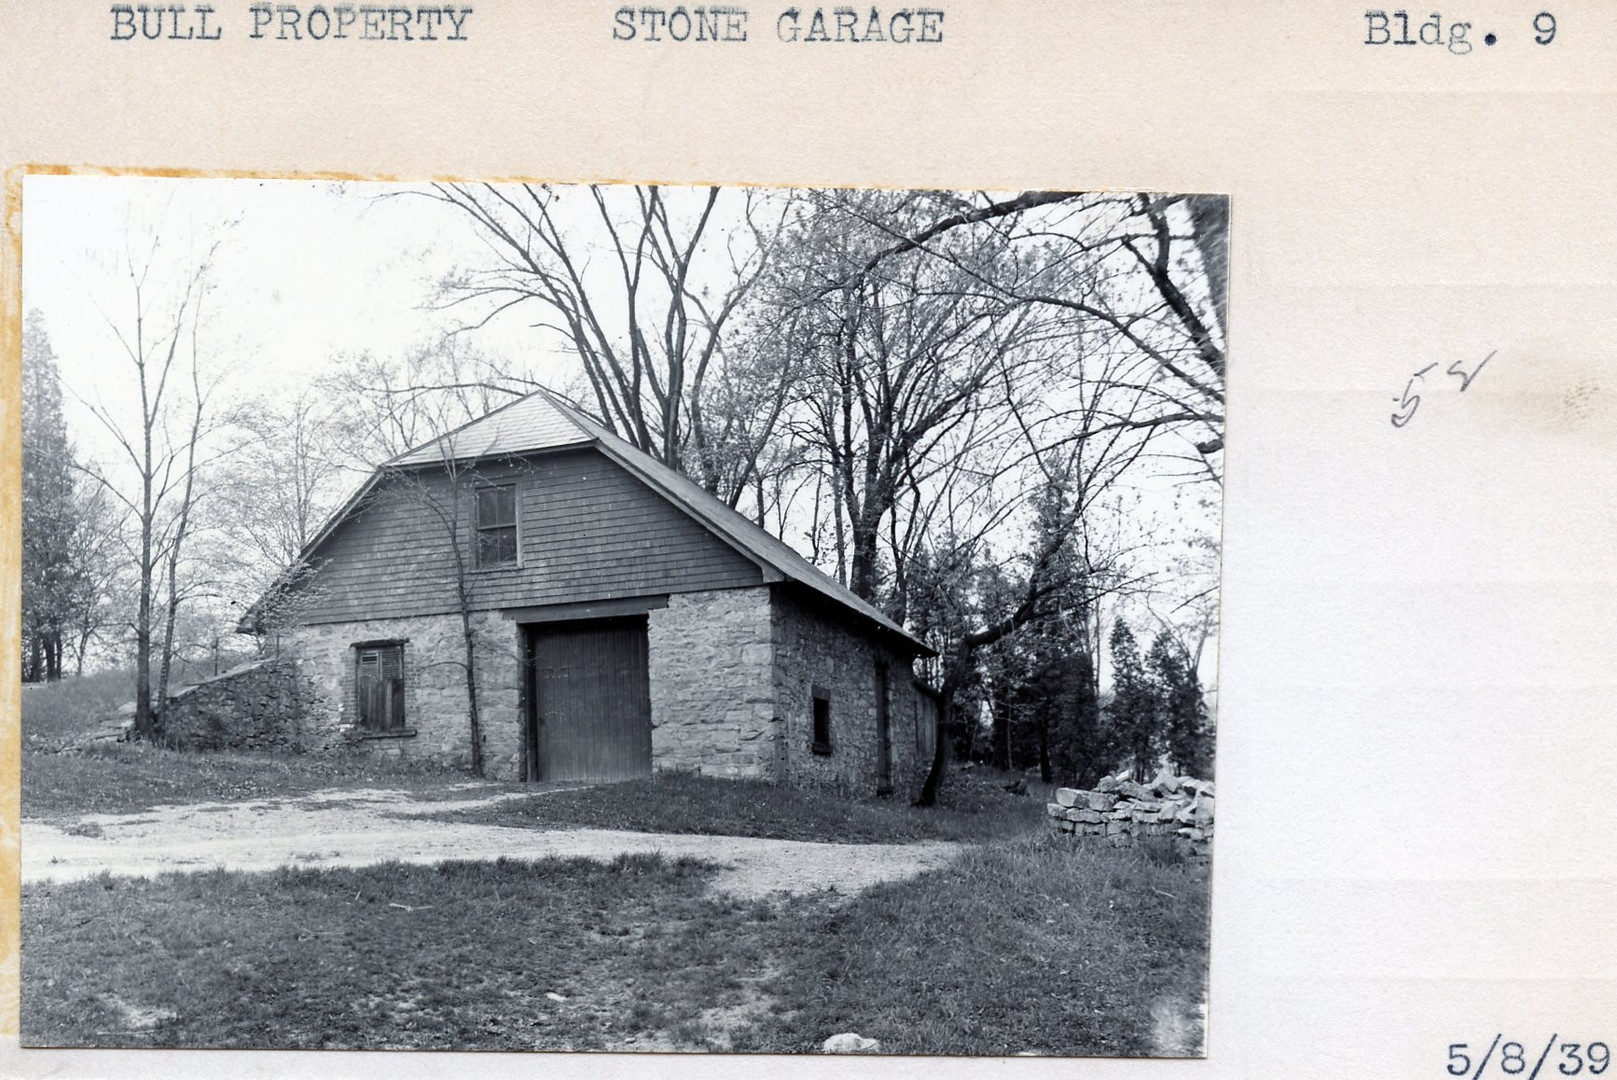 Bull Property, Stone Garage, Building #9, 5/8/39